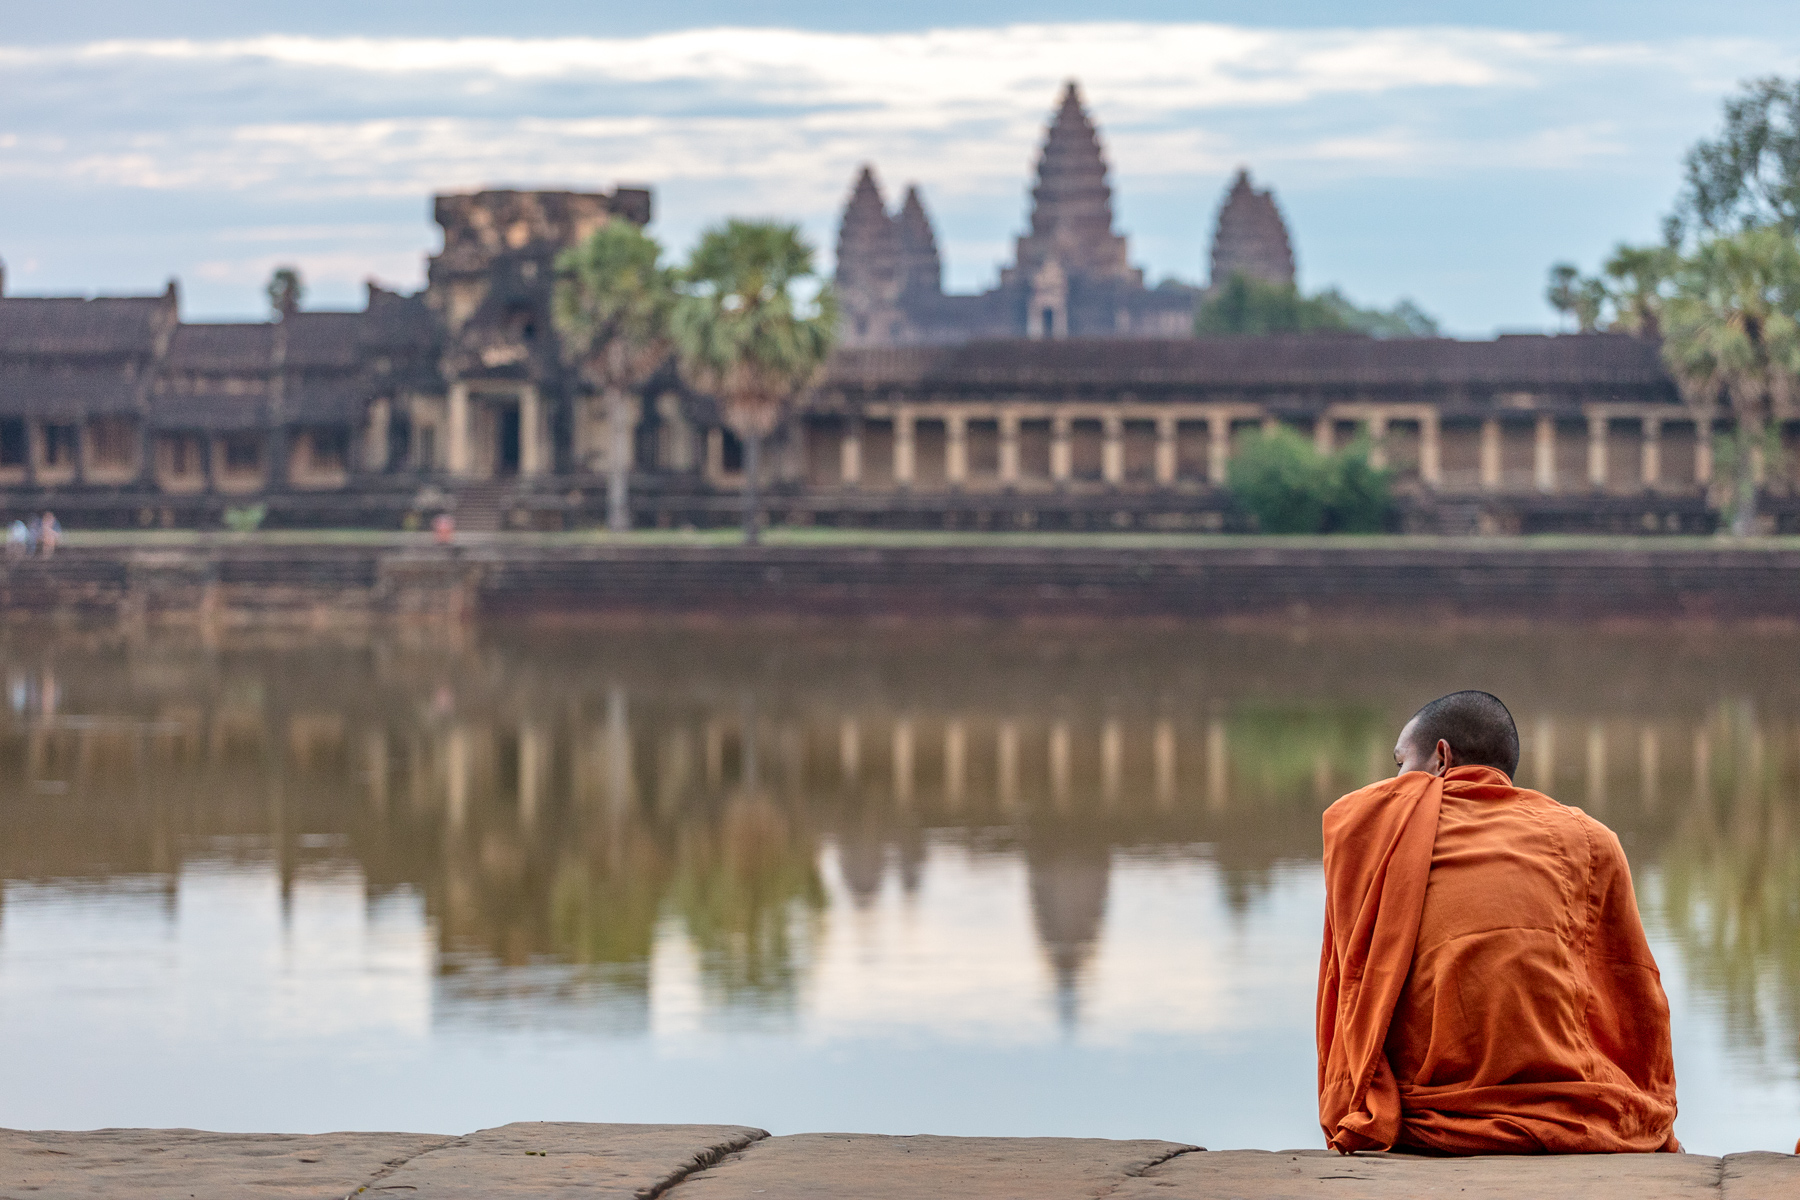 A monk watches the tourists at Angkor Wat